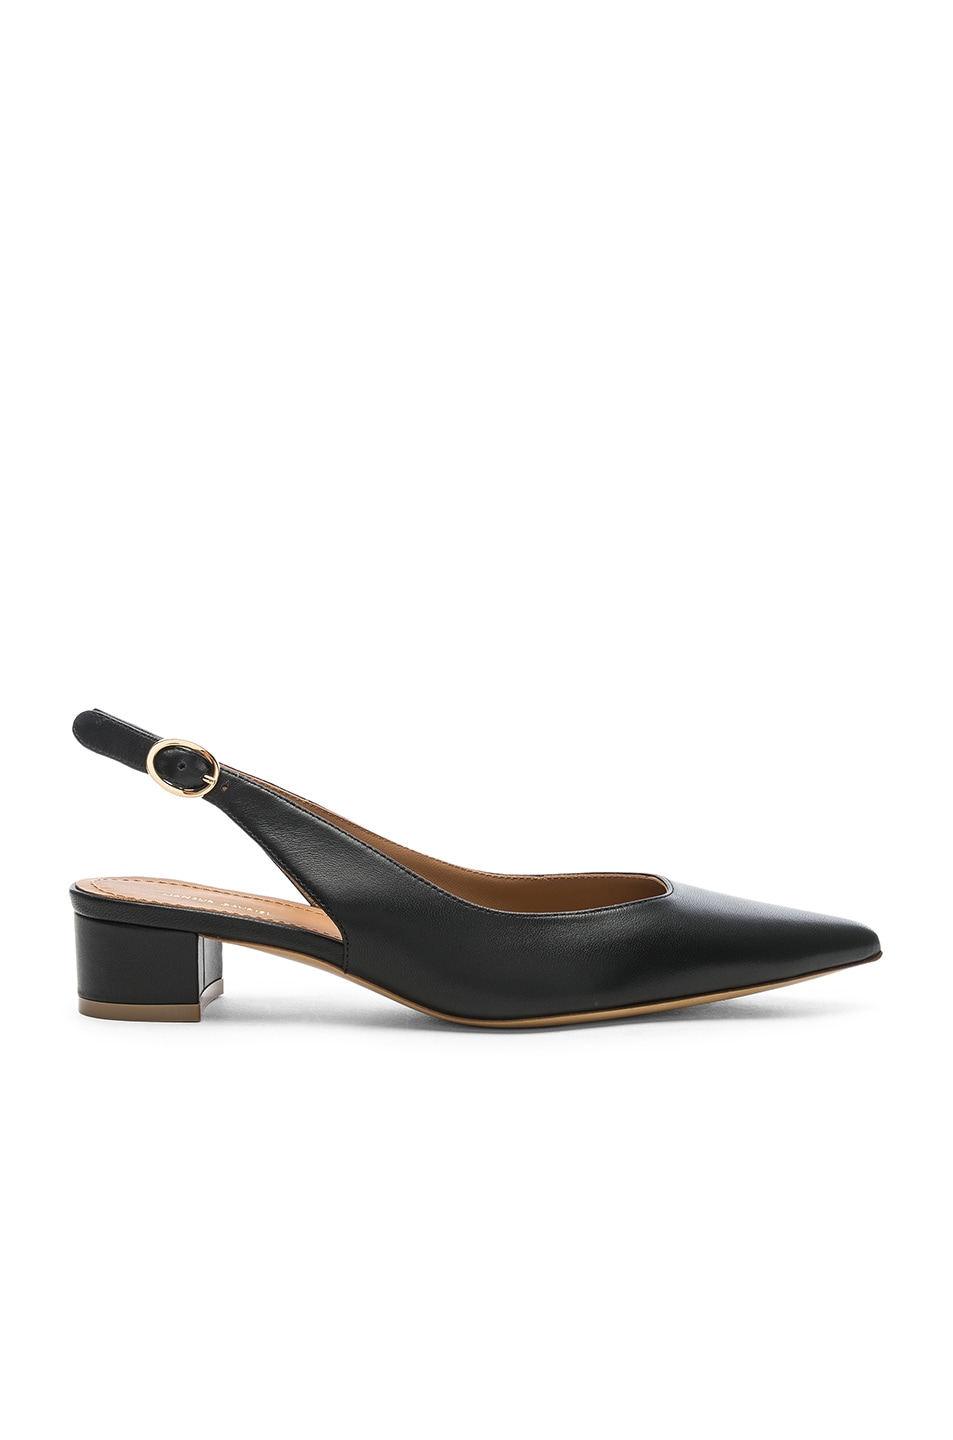 Image 1 of Mansur Gavriel Lamb Slingback Heel in Black